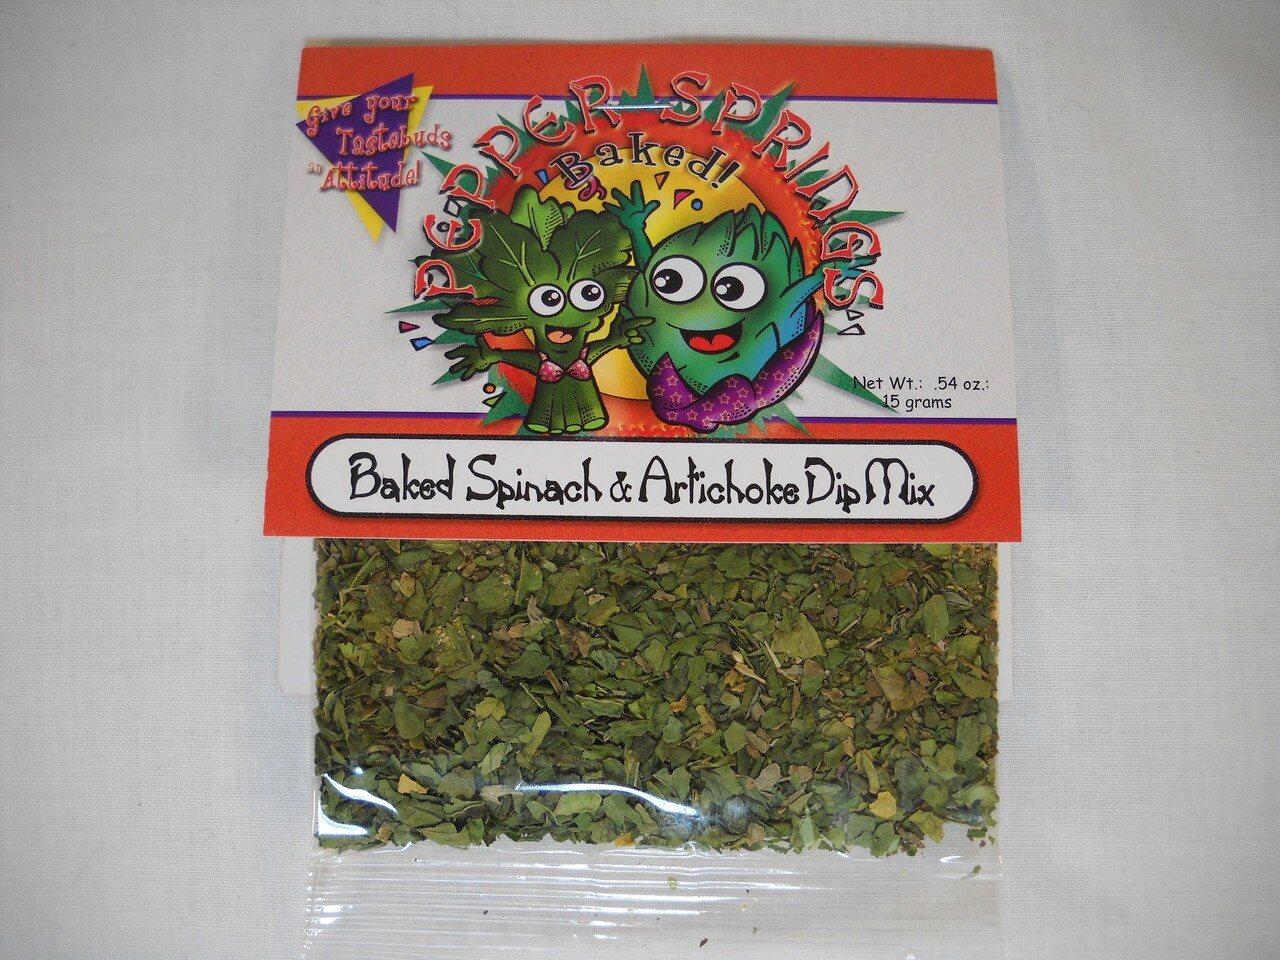 Baked Spinach Artichoke Dip Mix 1